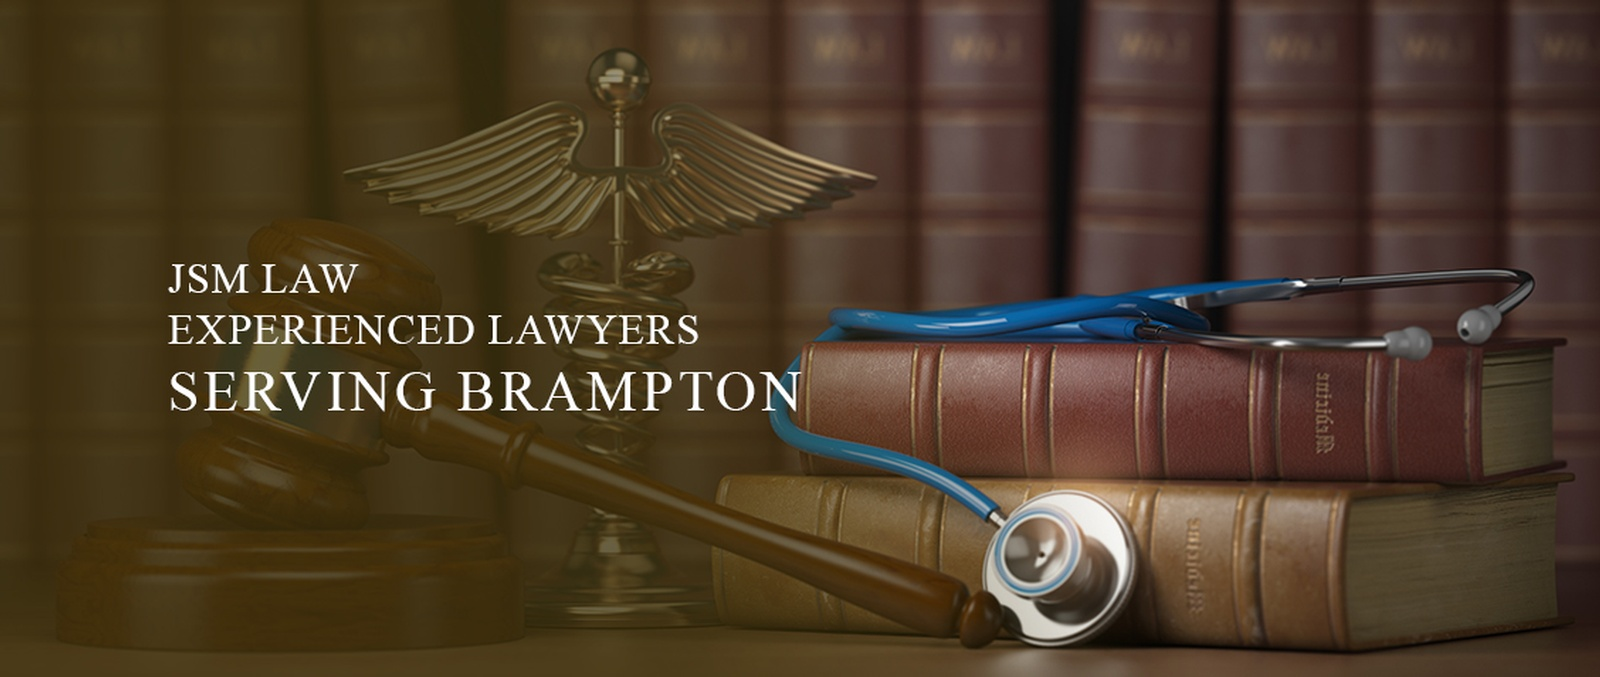 CORPORATE, CRIMINAL AND PERSONAL INJURY LAWYERS BRAMPTON ON